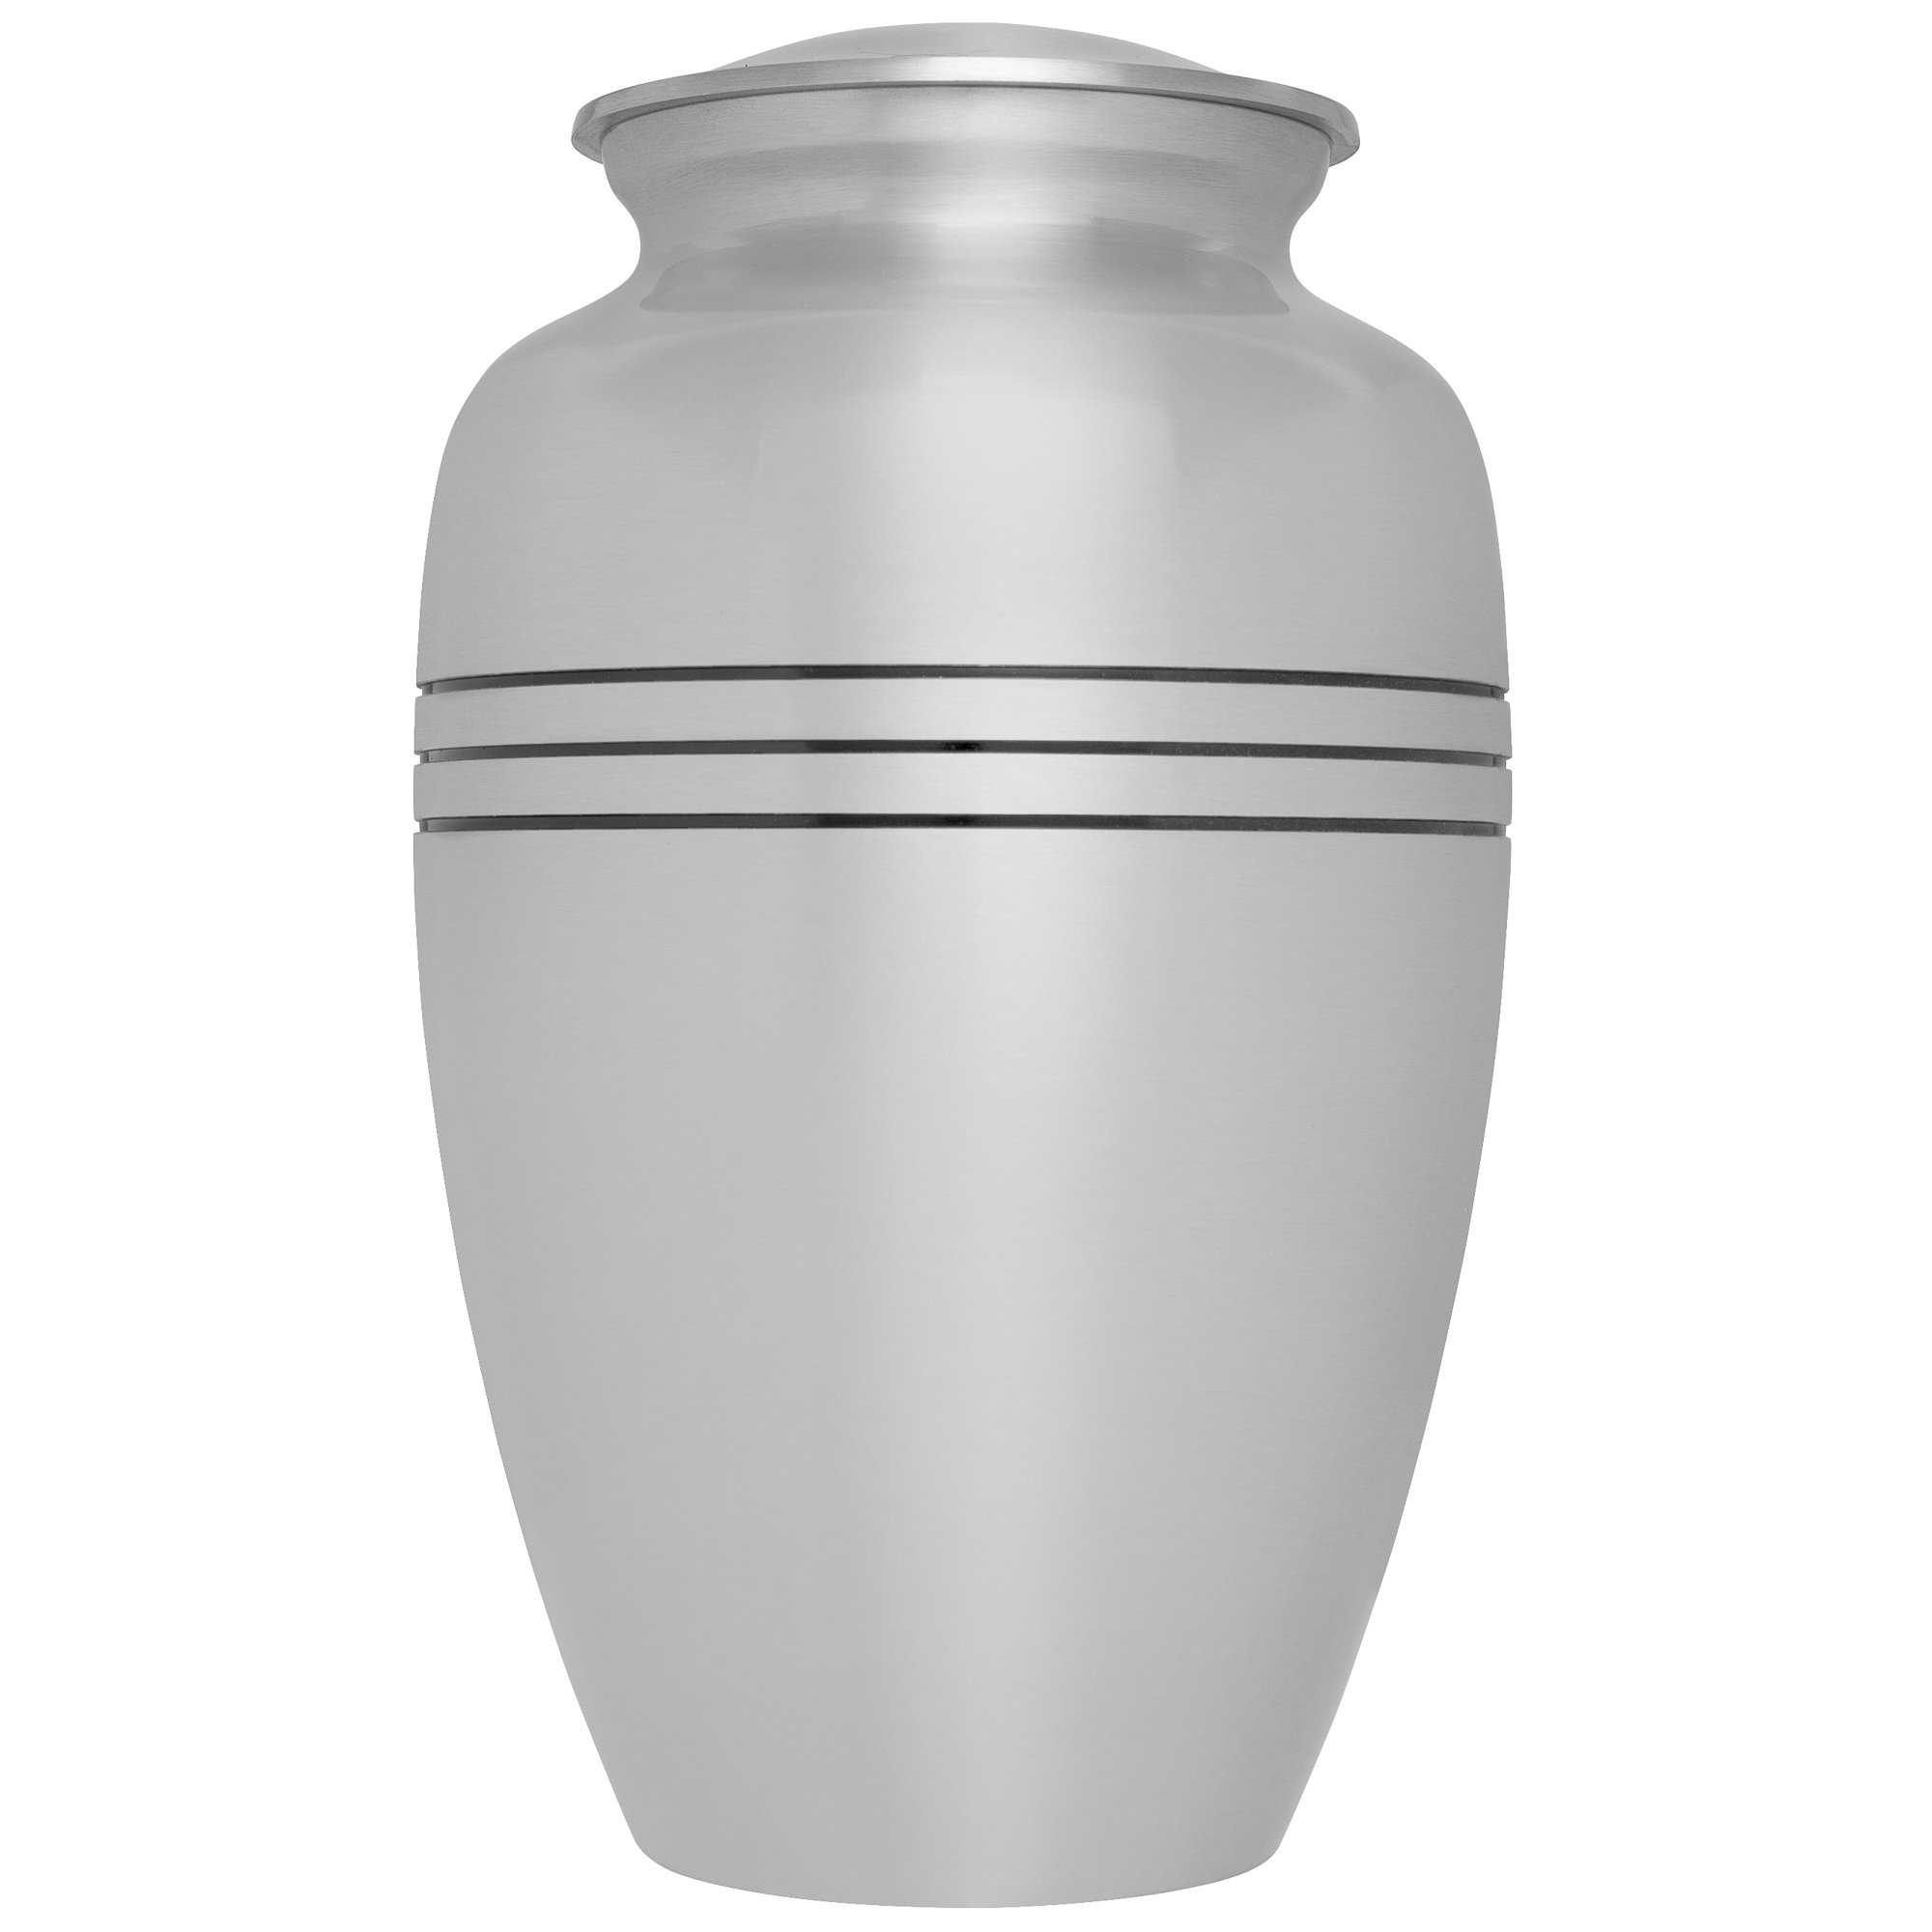 Silver Funeral Urn by Liliane Memorials - Cremation Urn for Human Ashes -Hand Made in Brass -Suitable for Cemetery Burial or Niche- Large Size fits remains of Adults up to 200 lbs- Monaco Silver Model